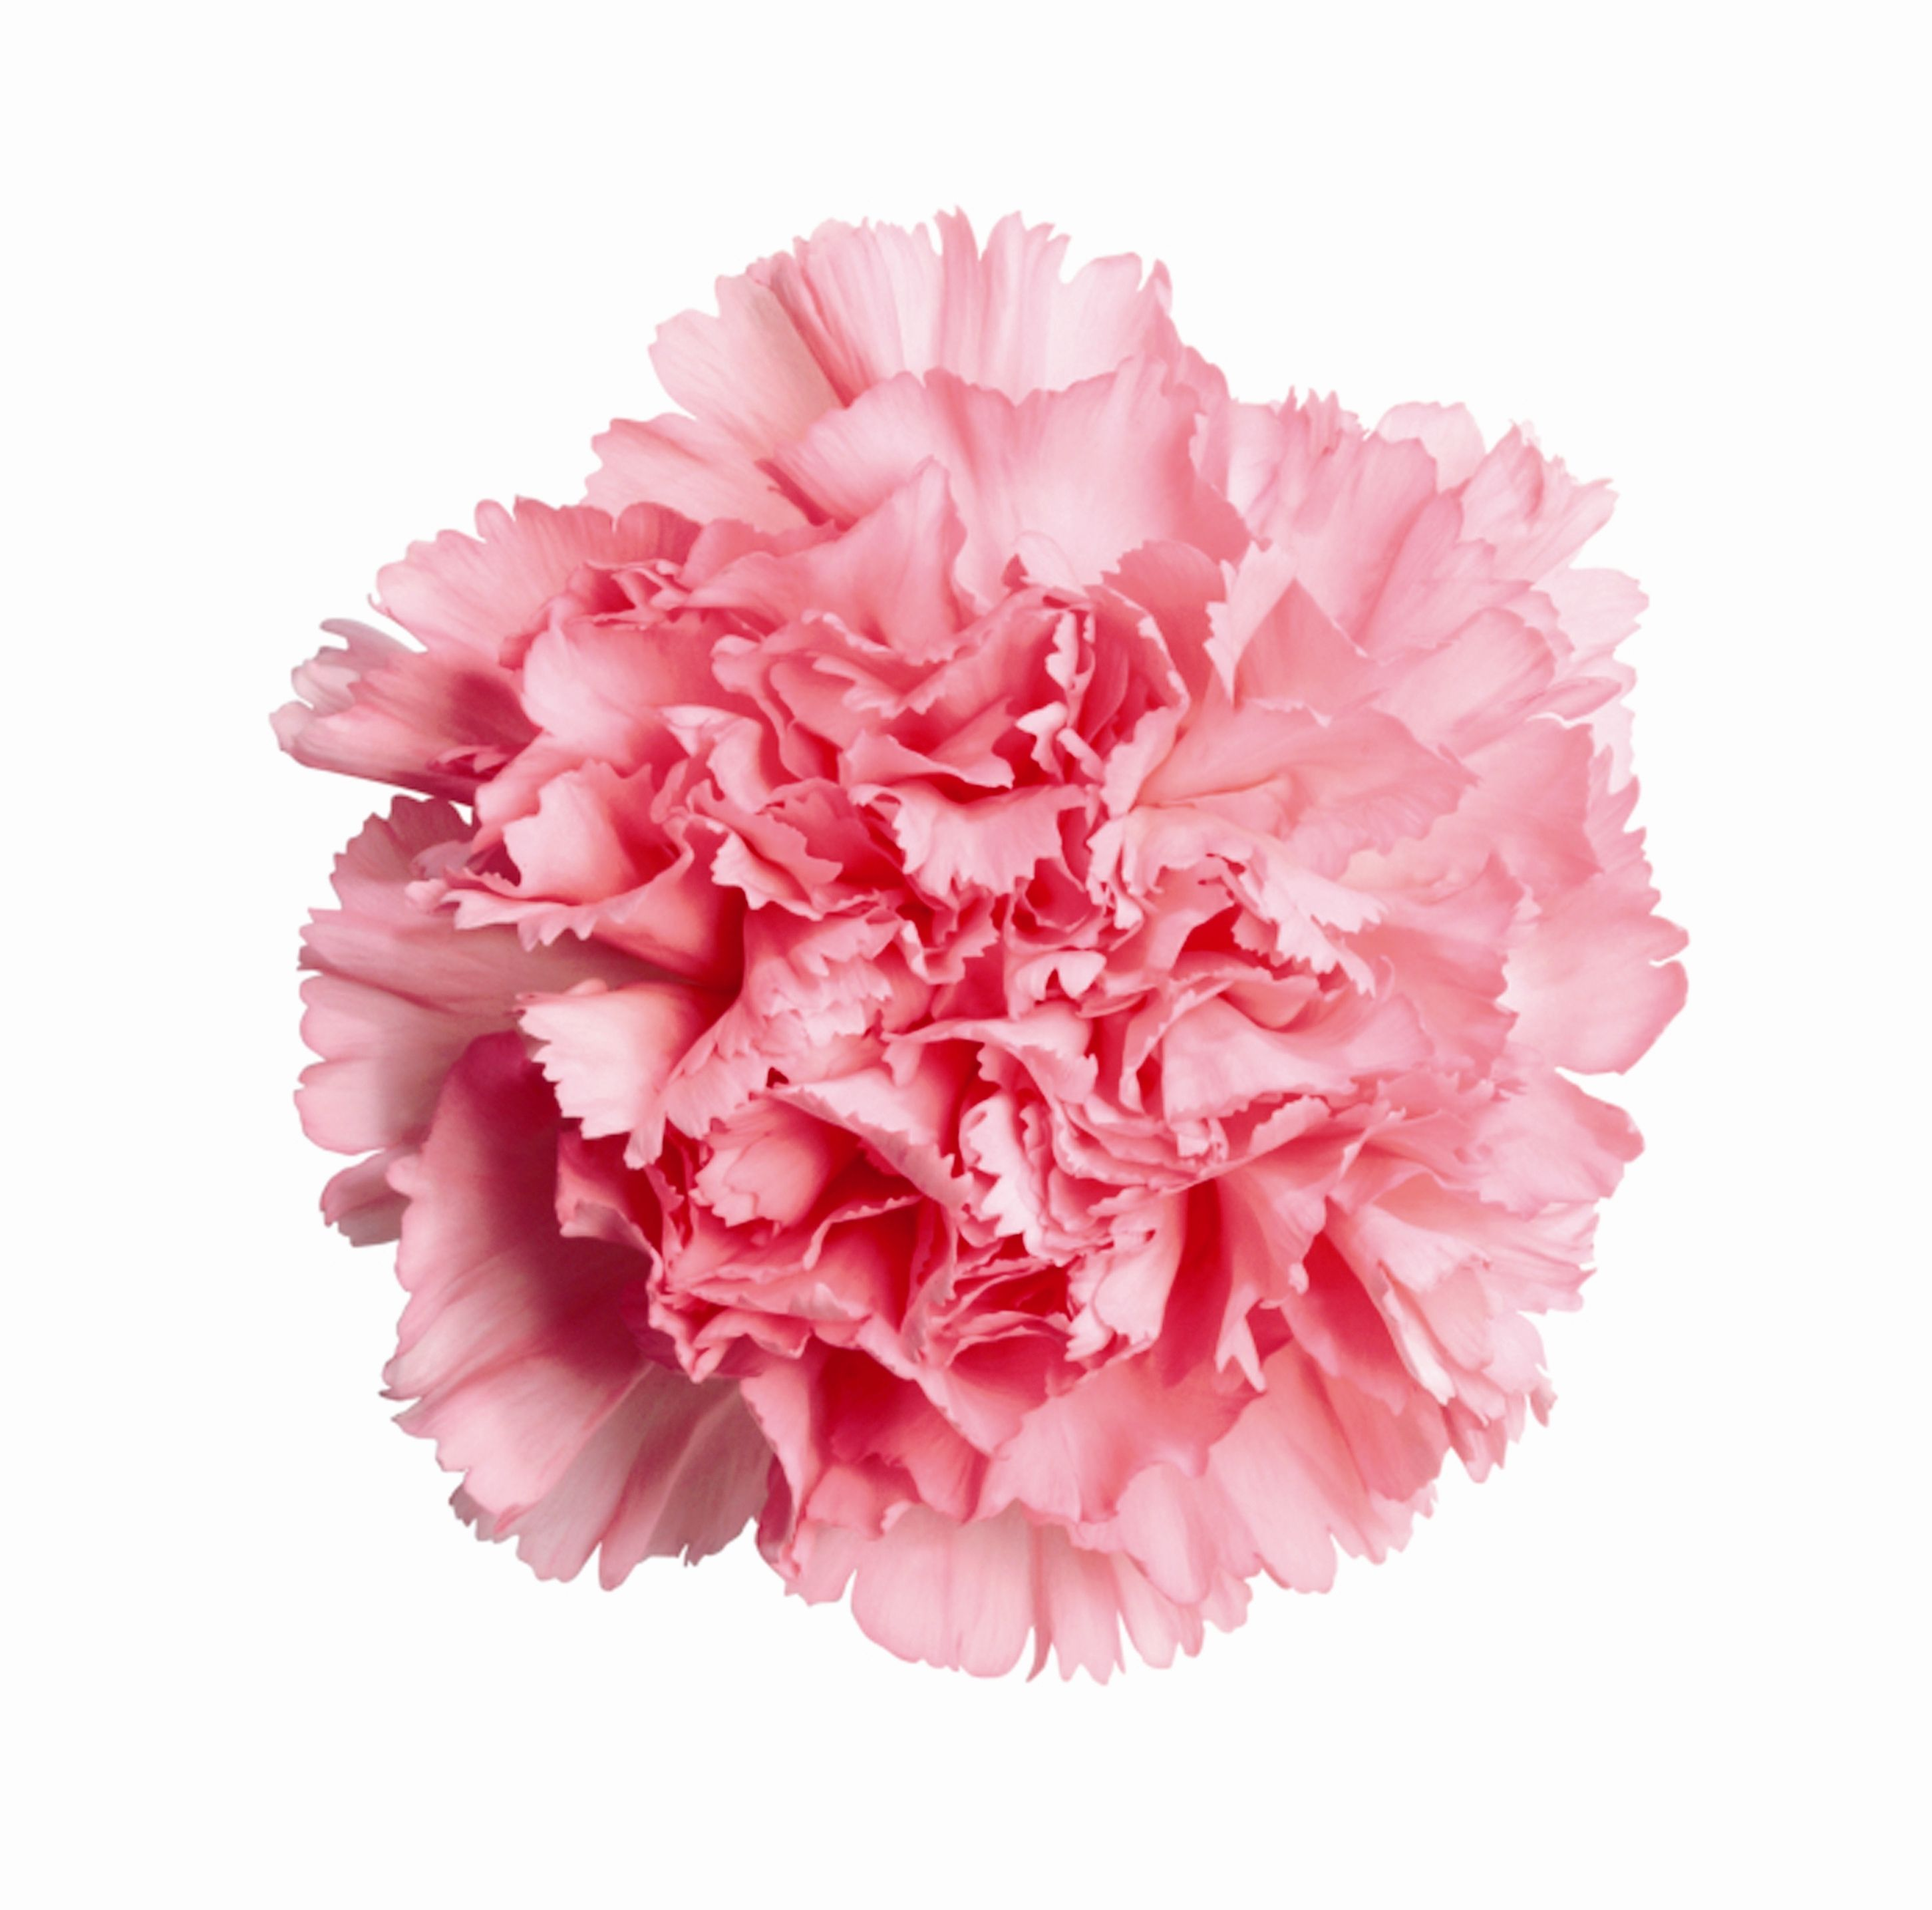 carnation Google Search Carnation flower, Birth month